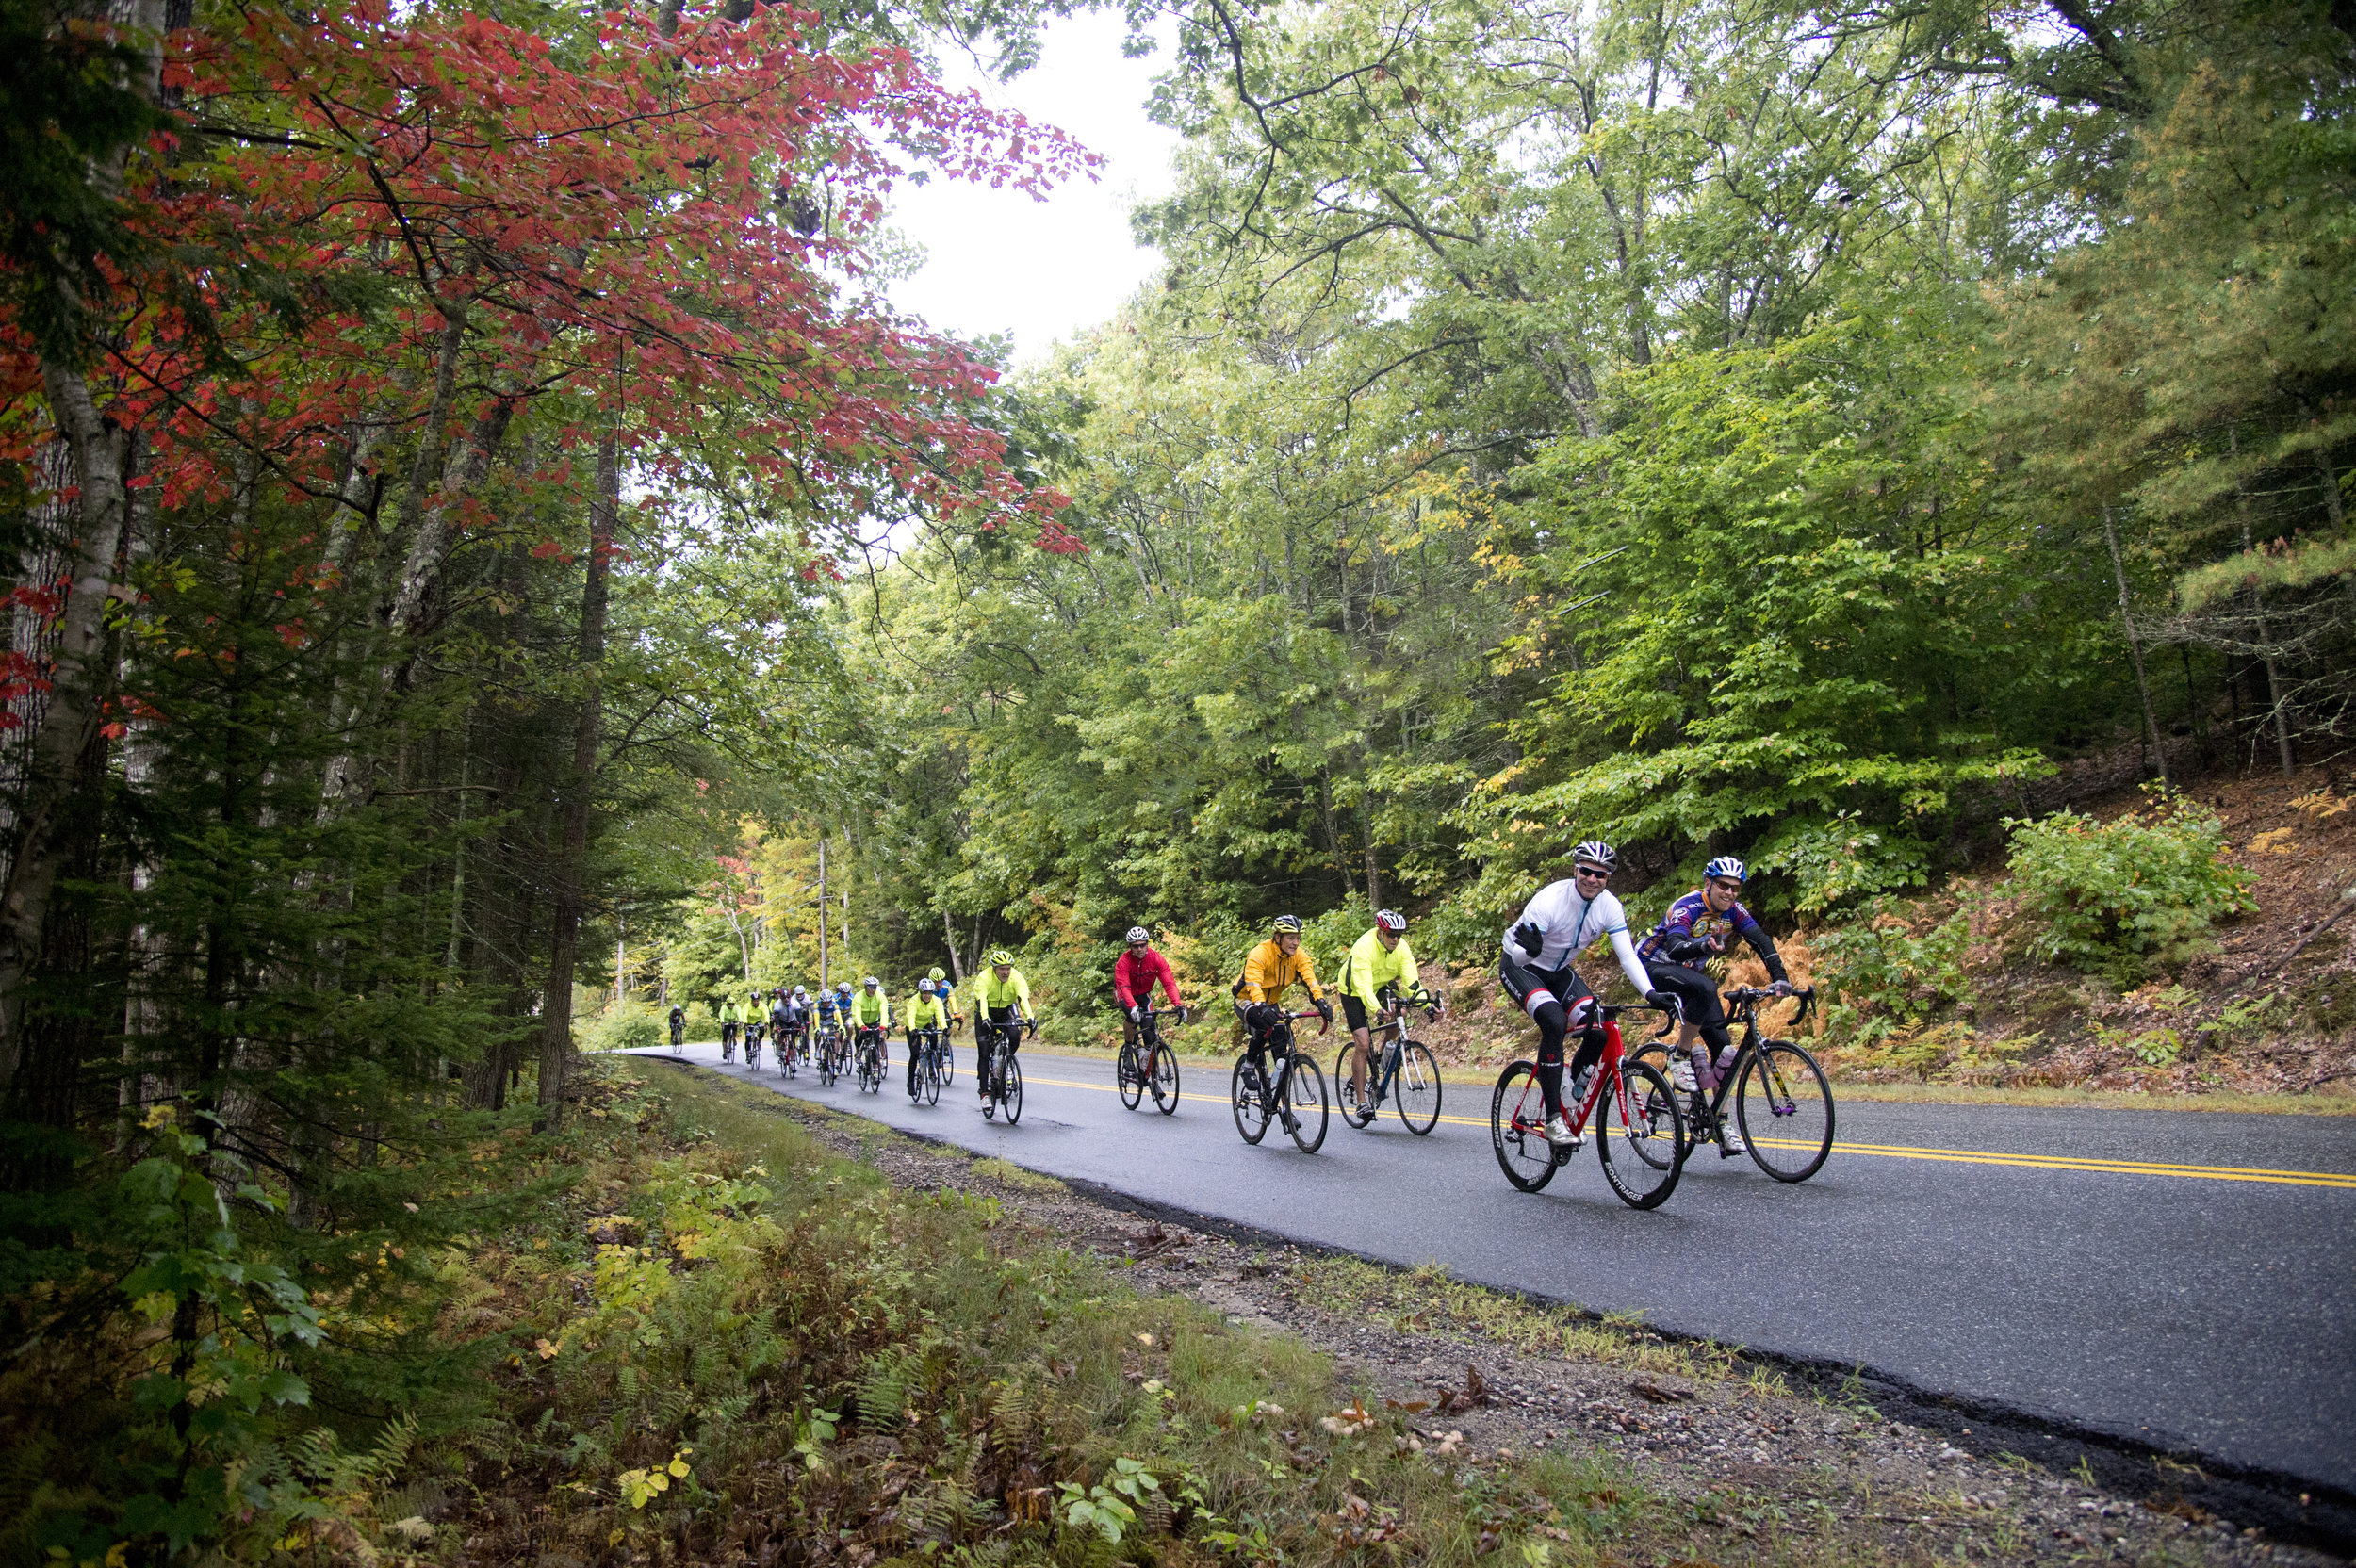 Casey Gibson_TwoDayRide_Day 2_Oct 2, 2016_300S (27).jpg